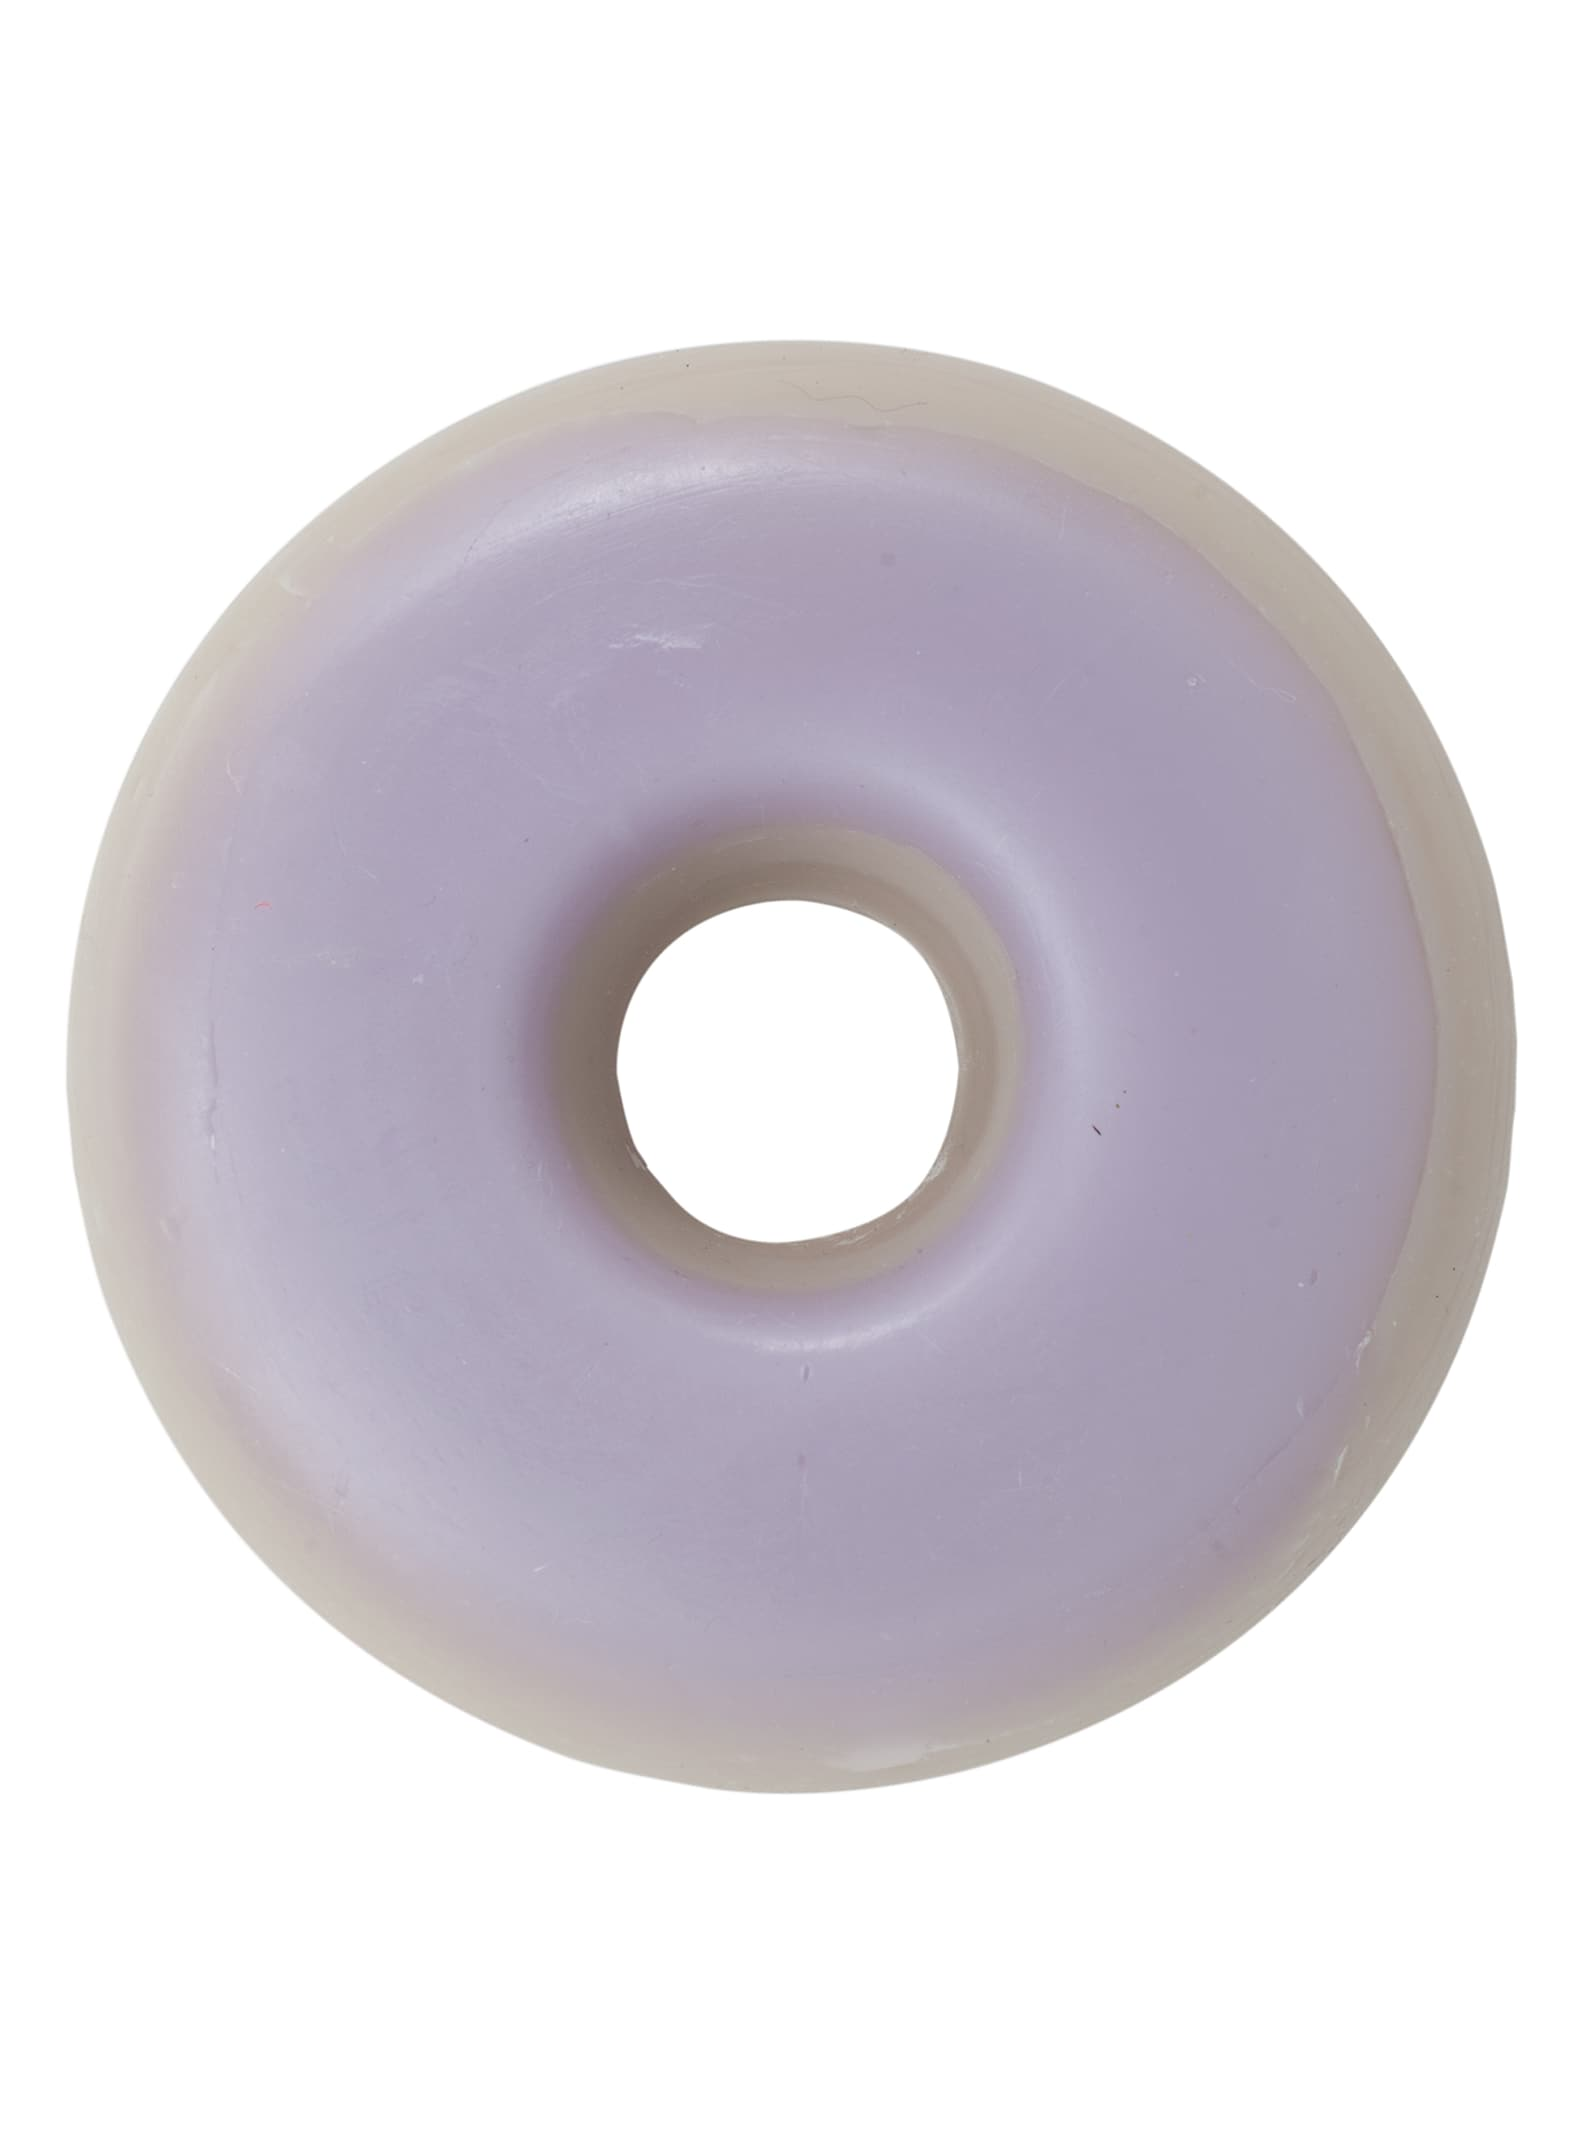 Burton Donut Wax shown in Assorted